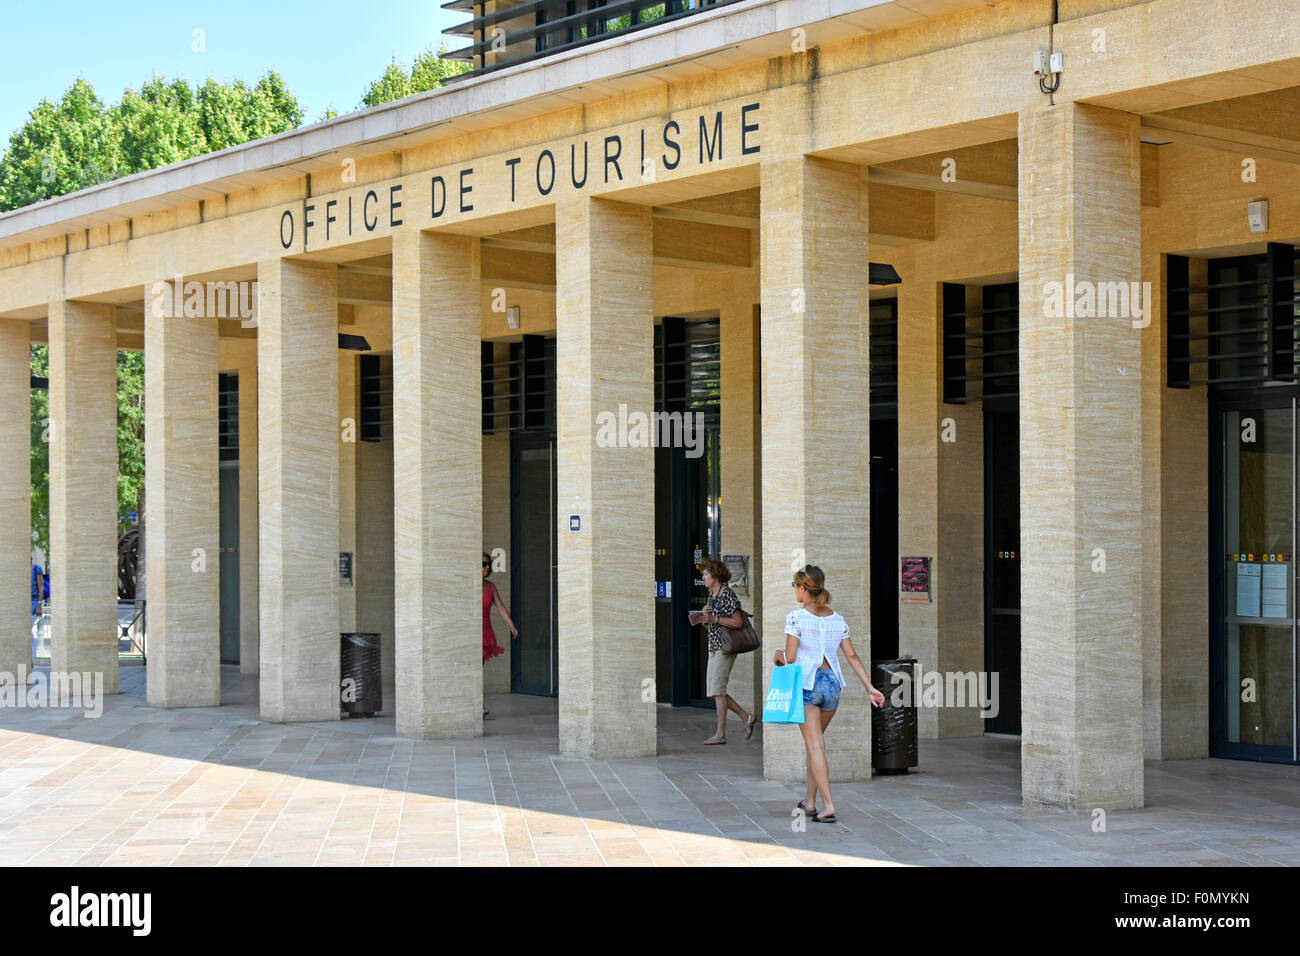 Tourist office france stock photos tourist office france stock images alamy - Aix en provence tourist office ...